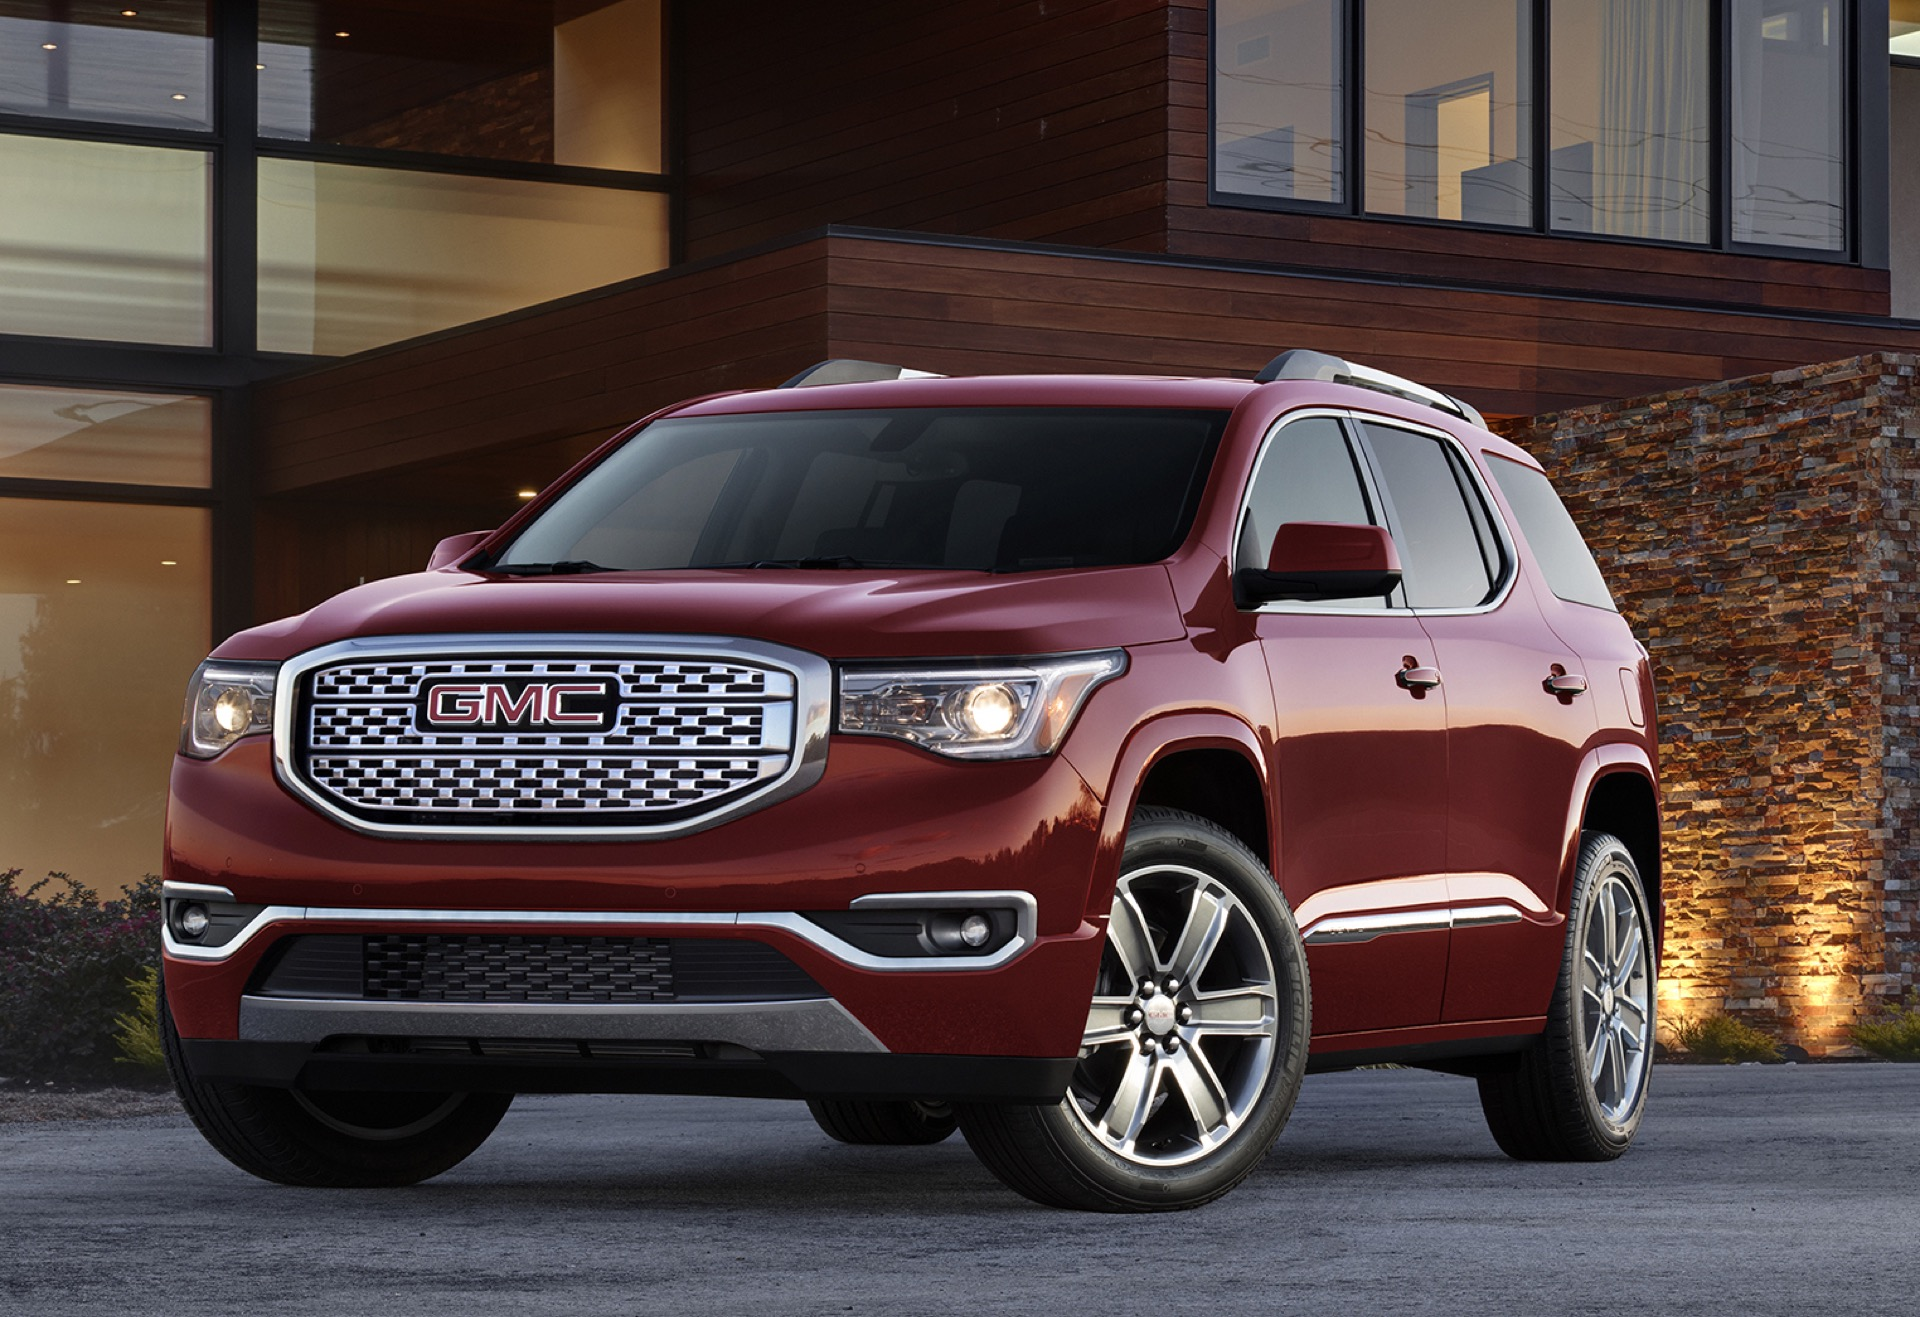 Gmc Acadia For Sale >> 2017 GMC Acadia Trims Down, As GM Plans For Less Product ...